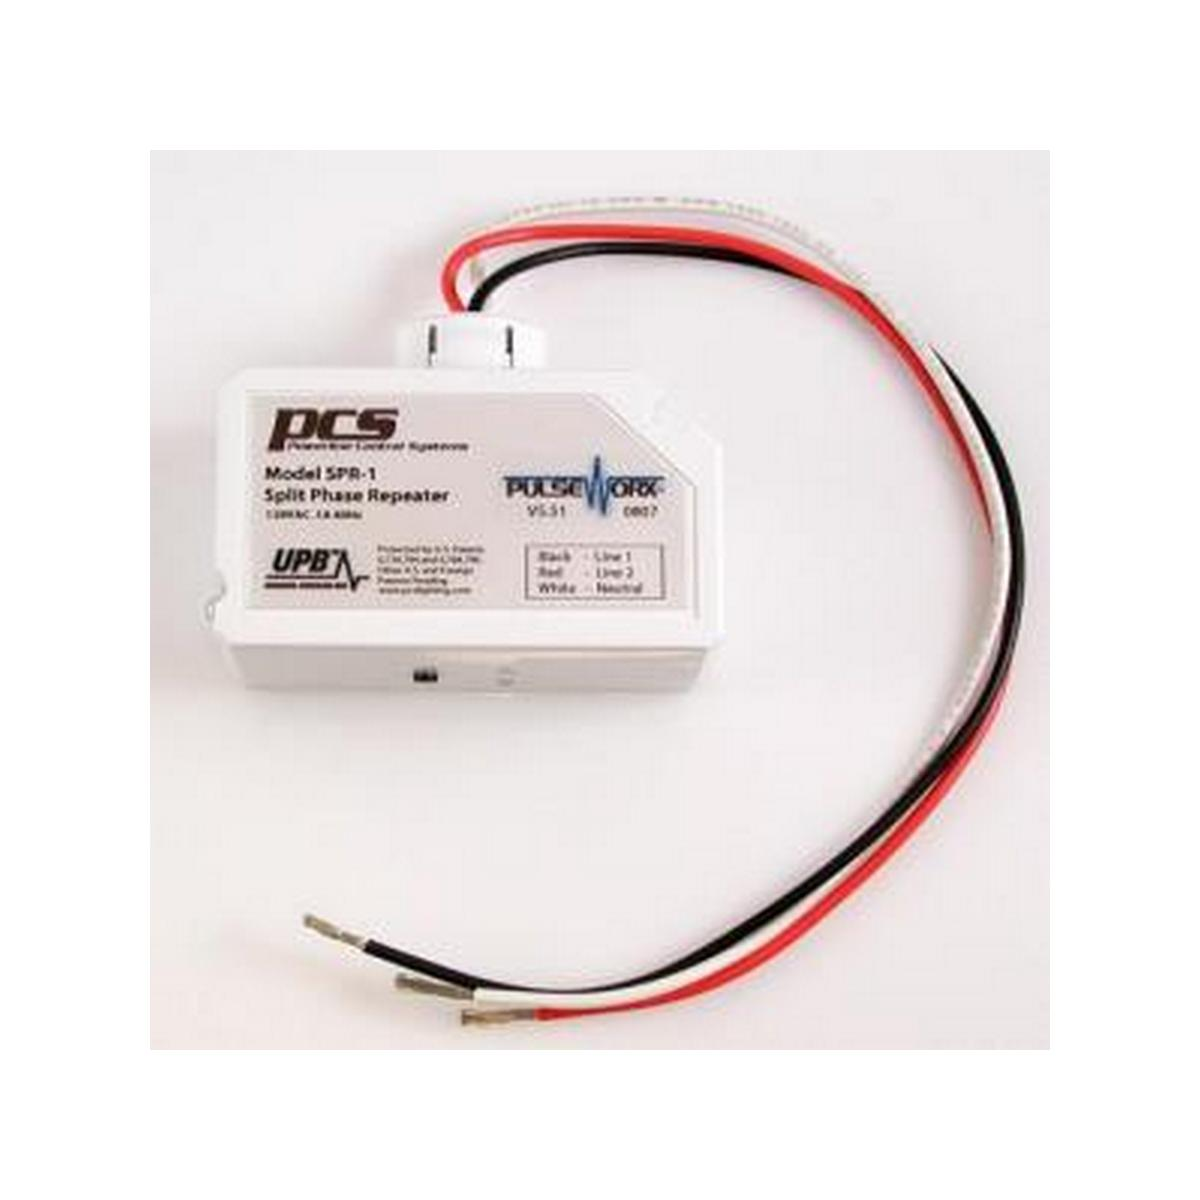 Pulseworx SPR-1 Wire in SPlit Phase Repeater